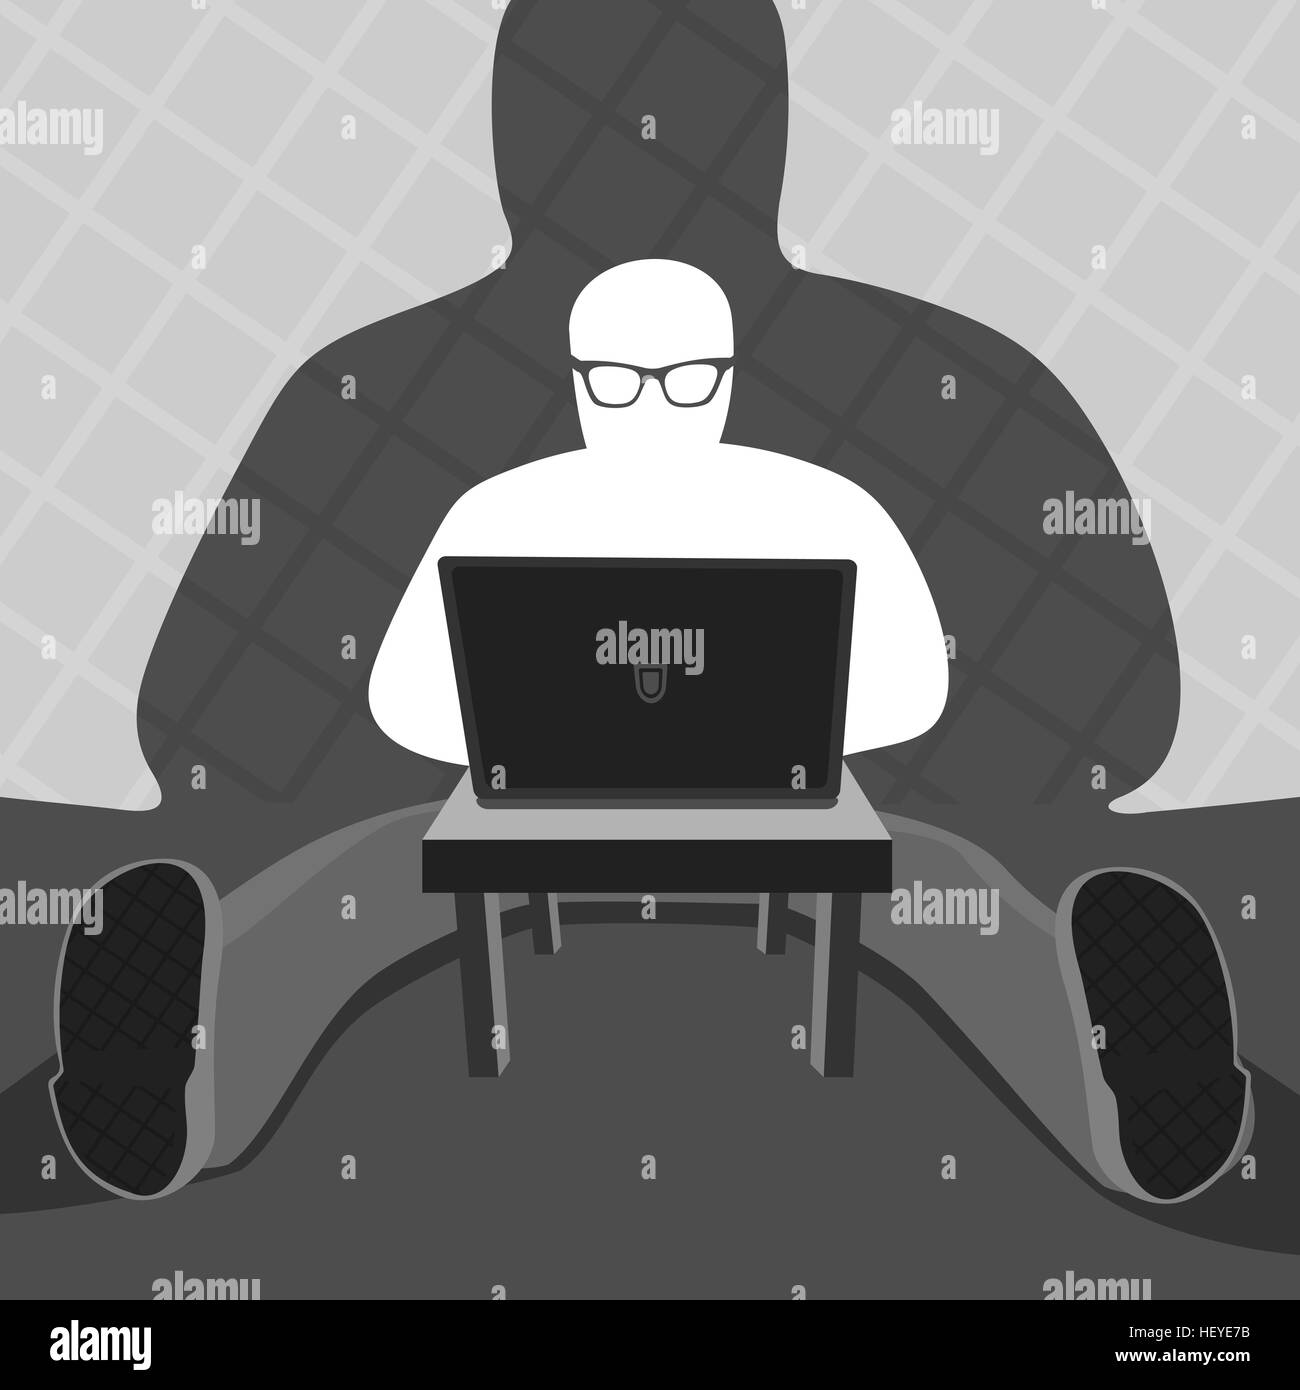 Anonymous User and Computer Vector Illustration - Stock Image